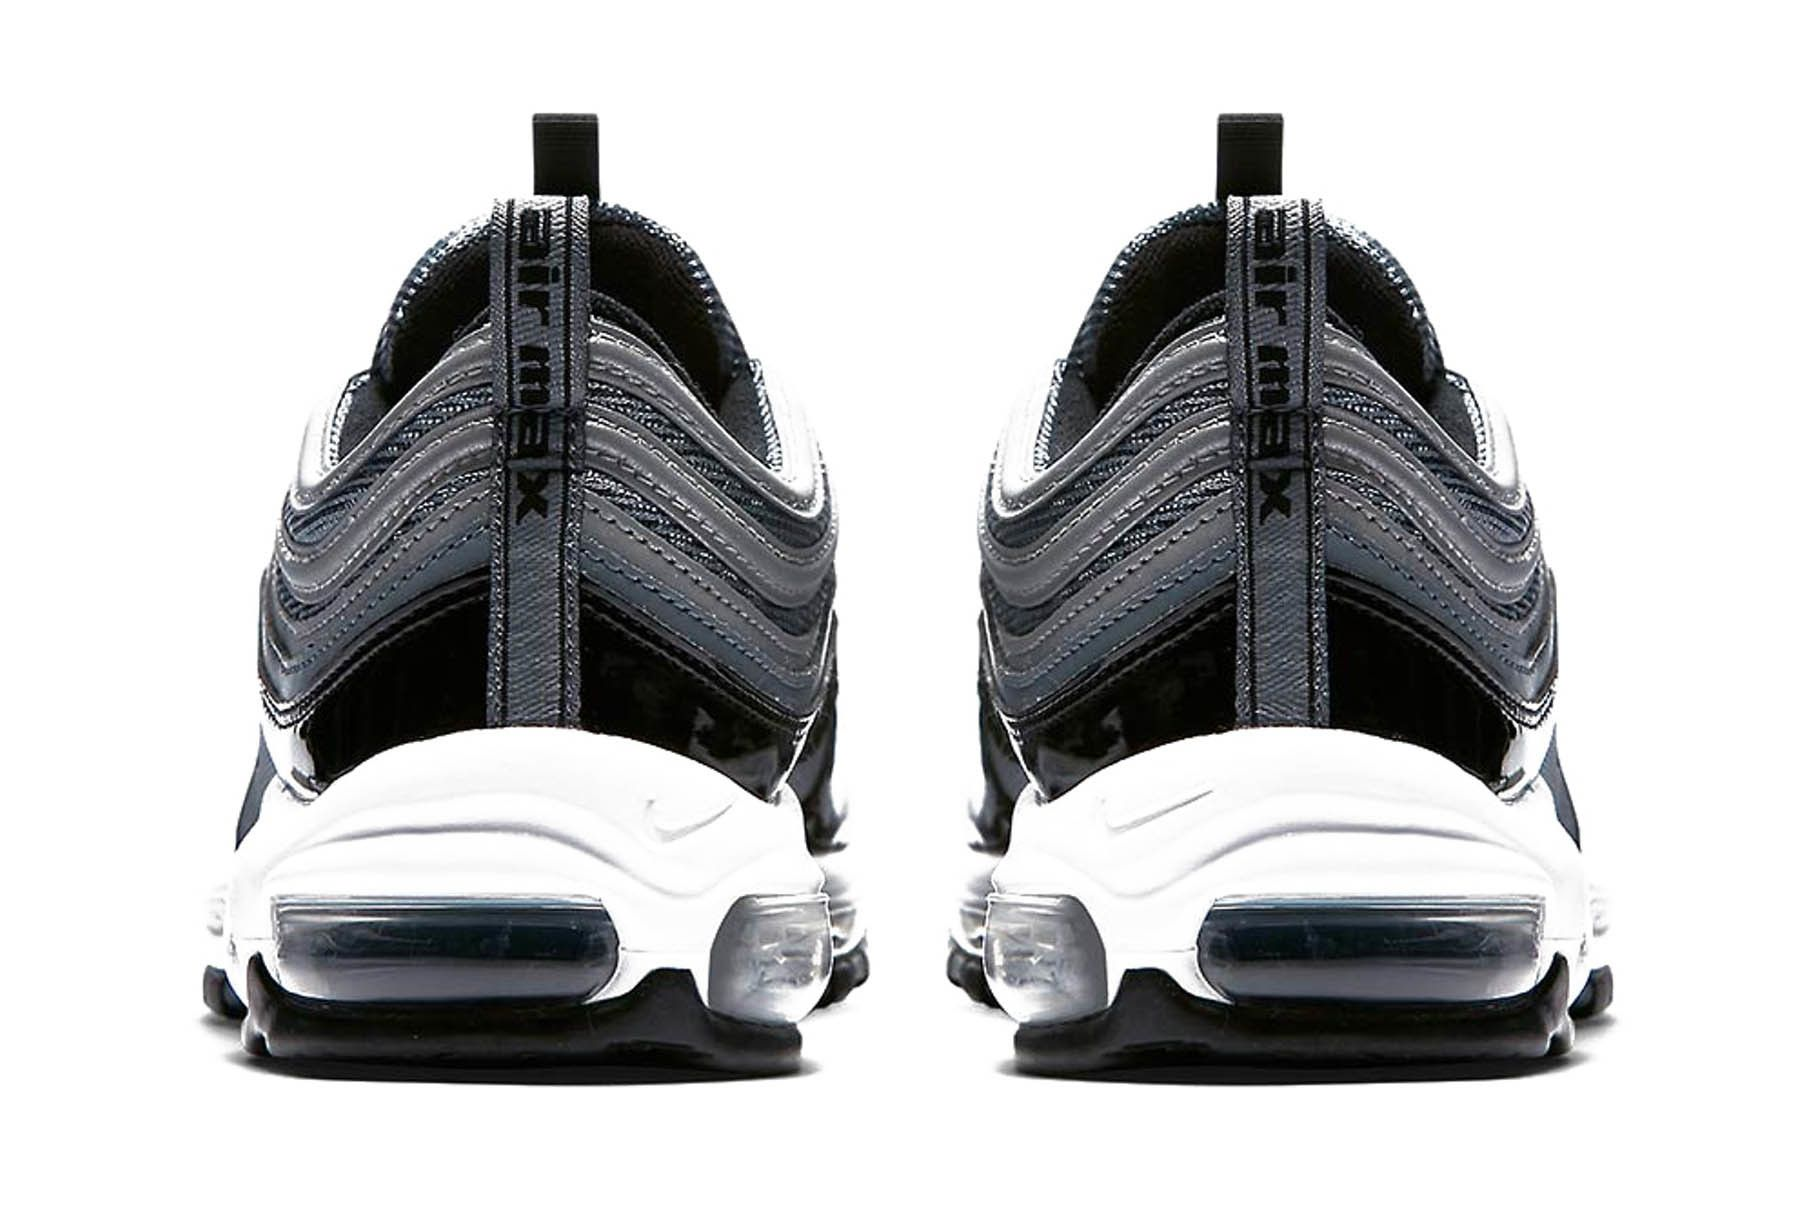 Nike Air Max 97 Black Patent Leather Release 003 Sneaker Freaker